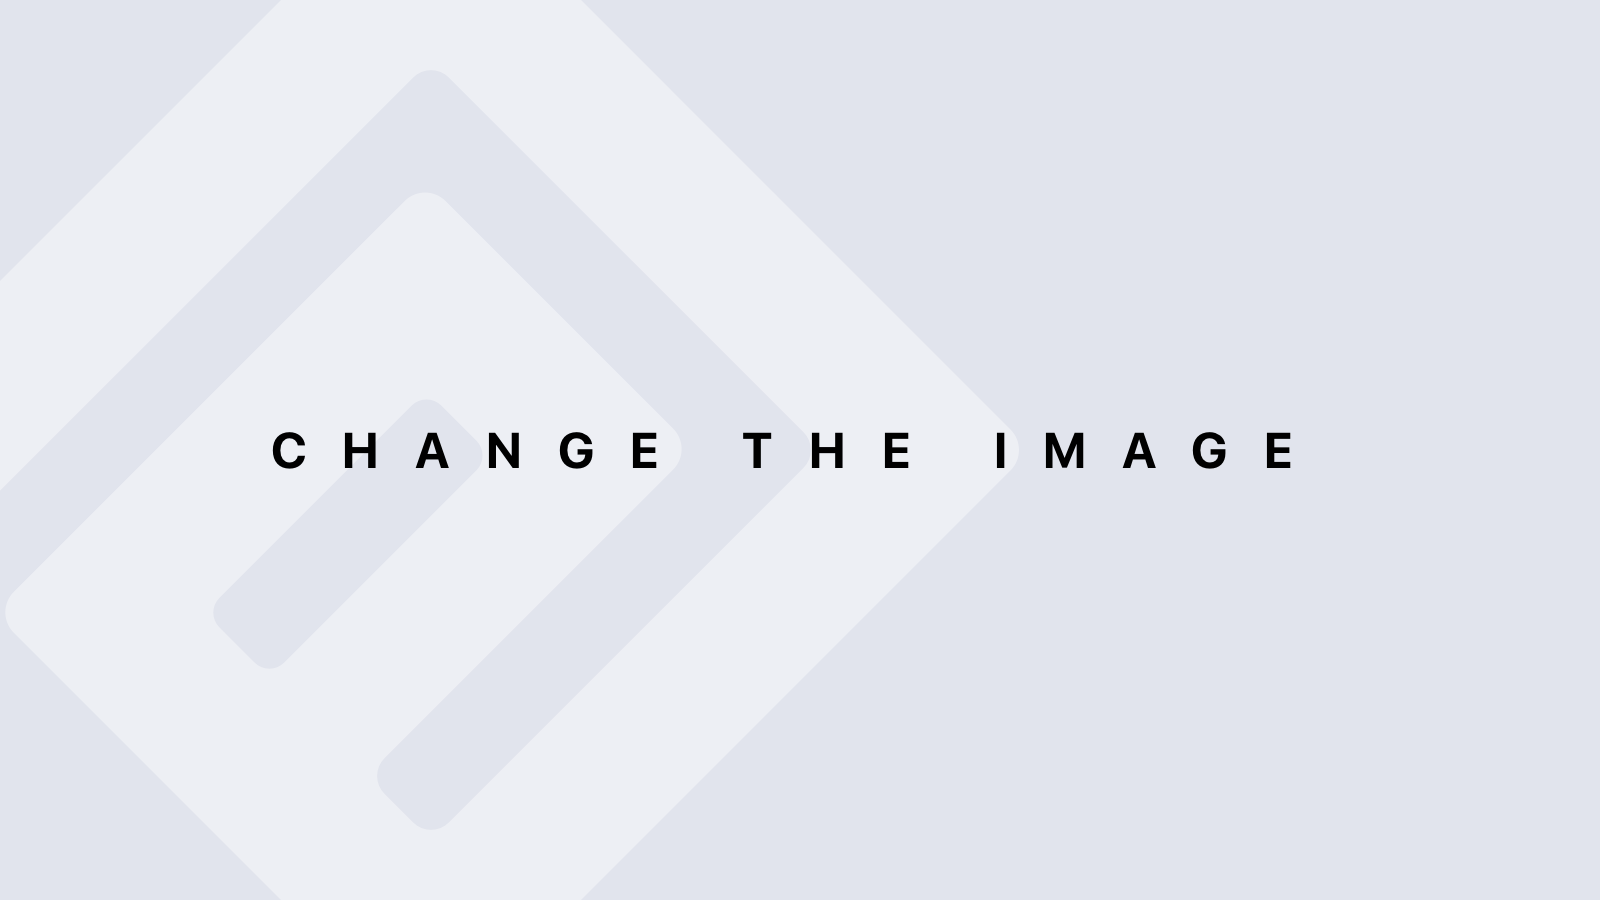 Image hover effect image